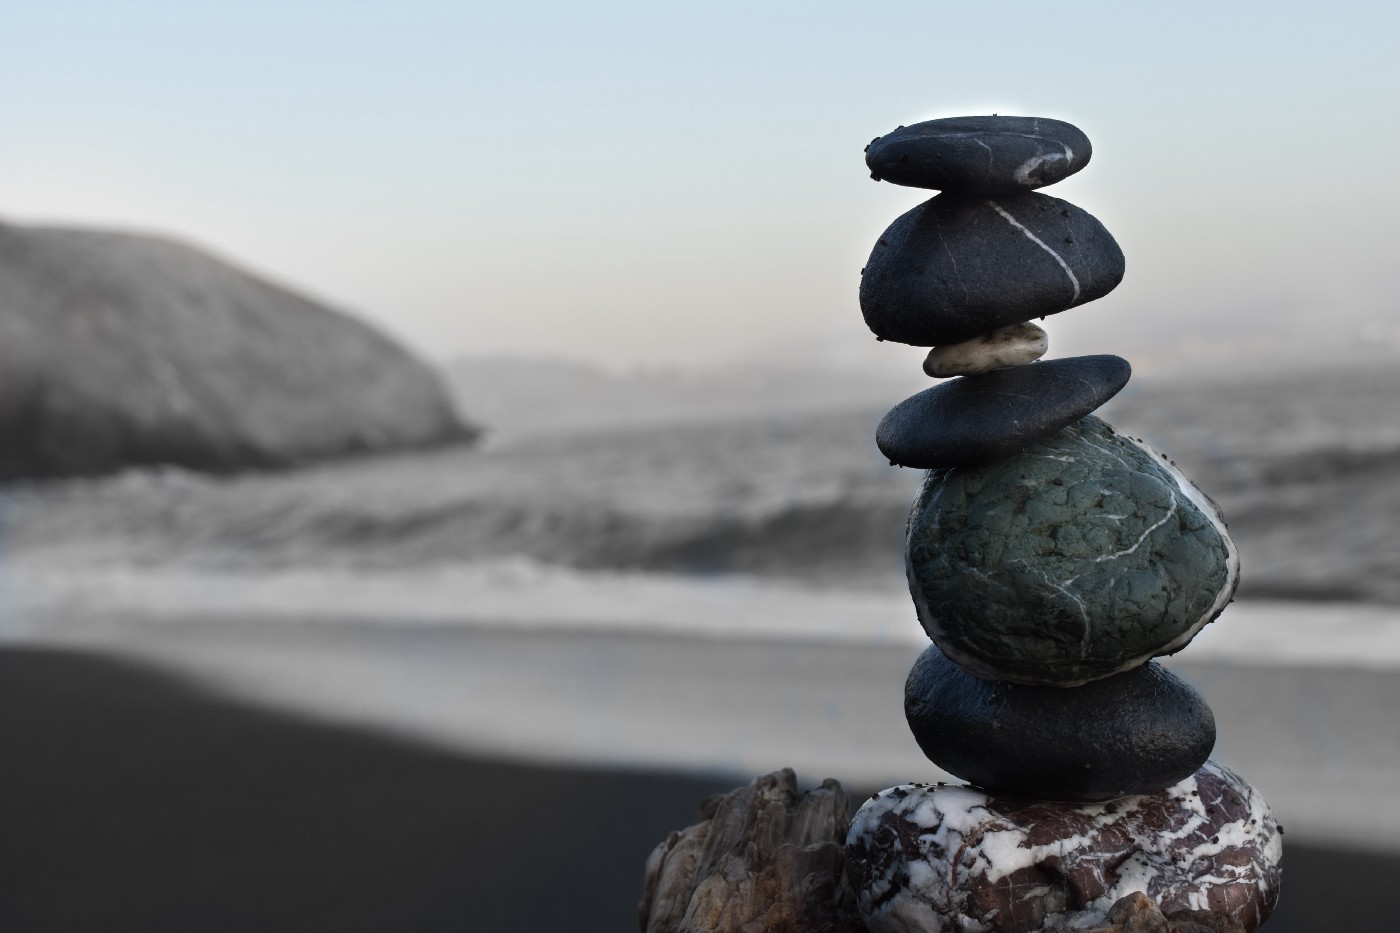 Six rocks balanced perfectly on top of each other by the sea.